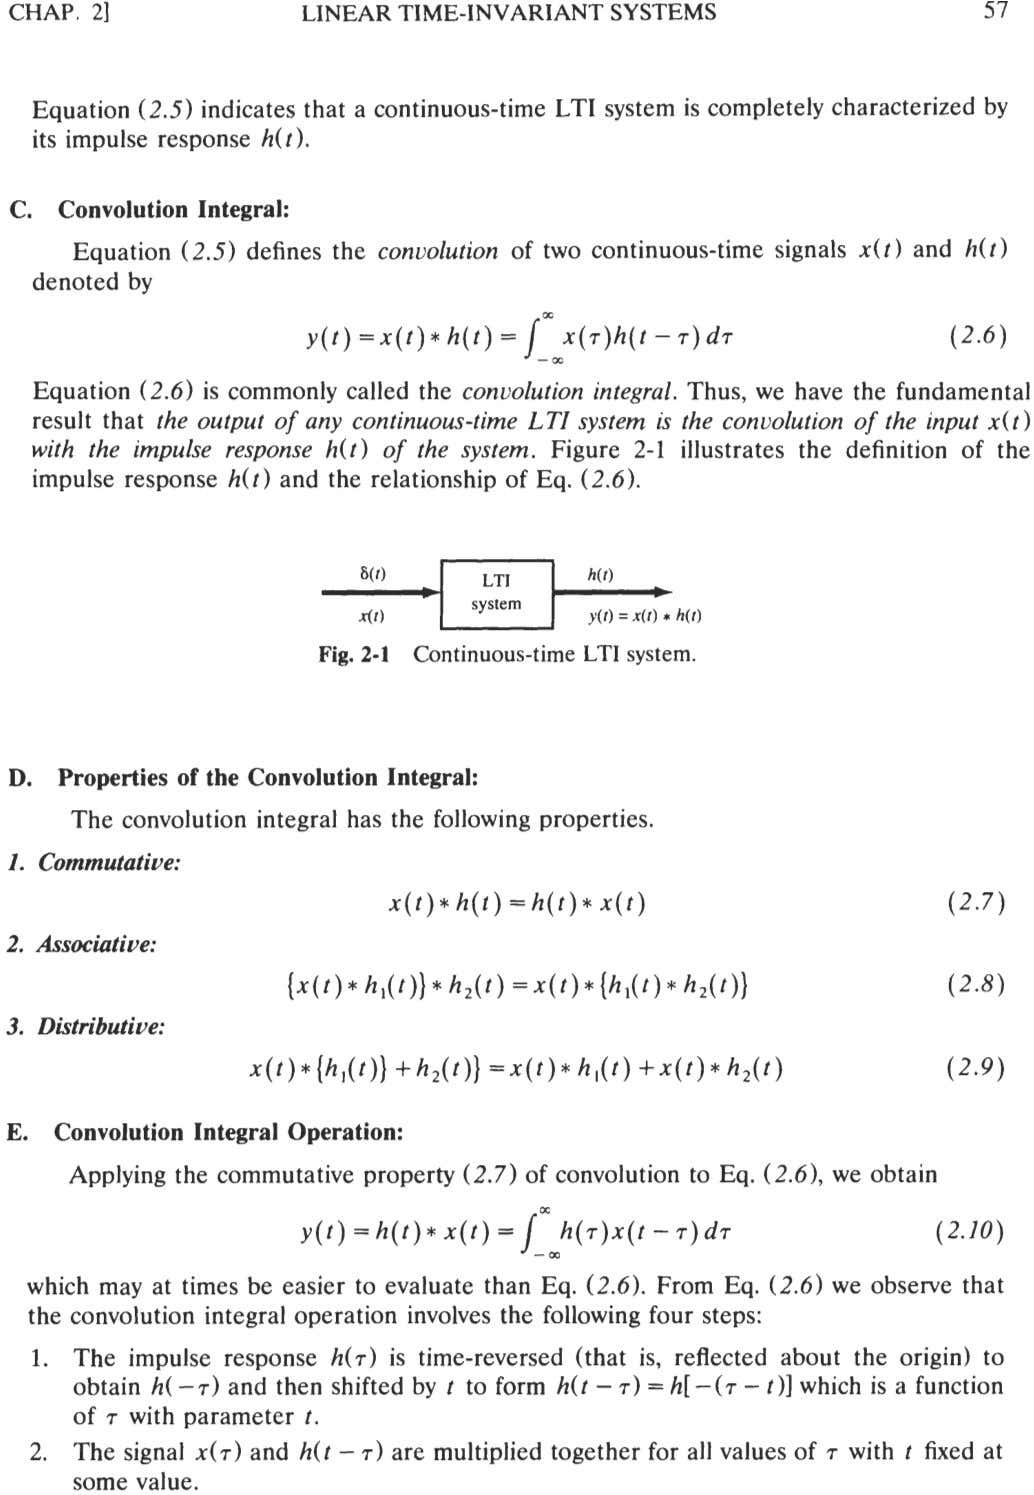 CHAP. 21 LINEAR TIME-INVARIANT SYSTEMS 57 Equation (2.5) indicates that a continuous-time LTI system is